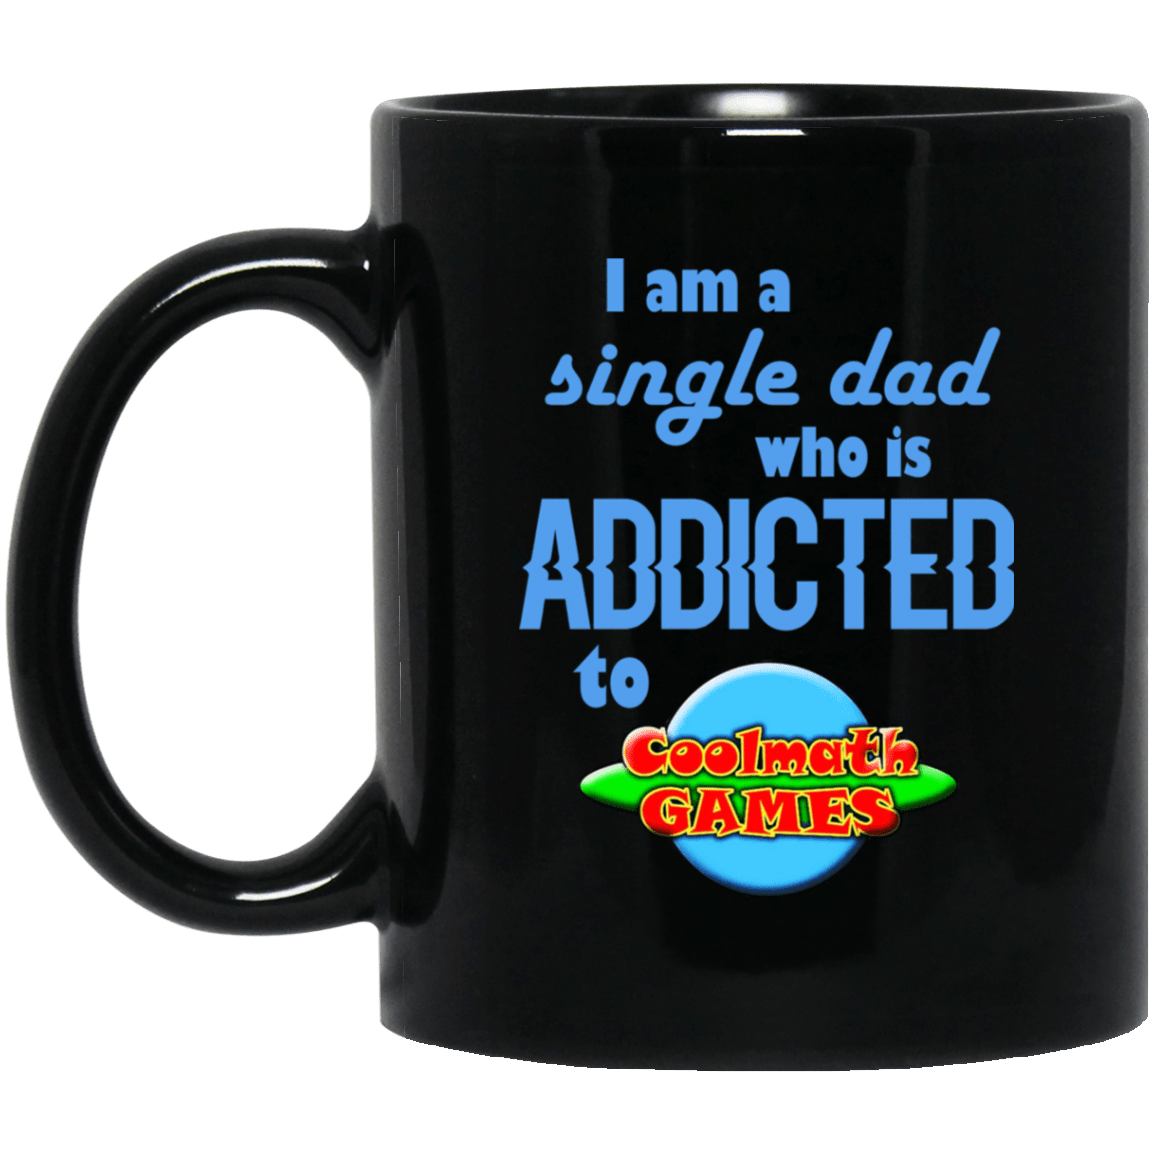 I Am Single Dad Who Is Addicted To Coolmath Games Mug 1065-10181-88767862-49307 - Tee Ript